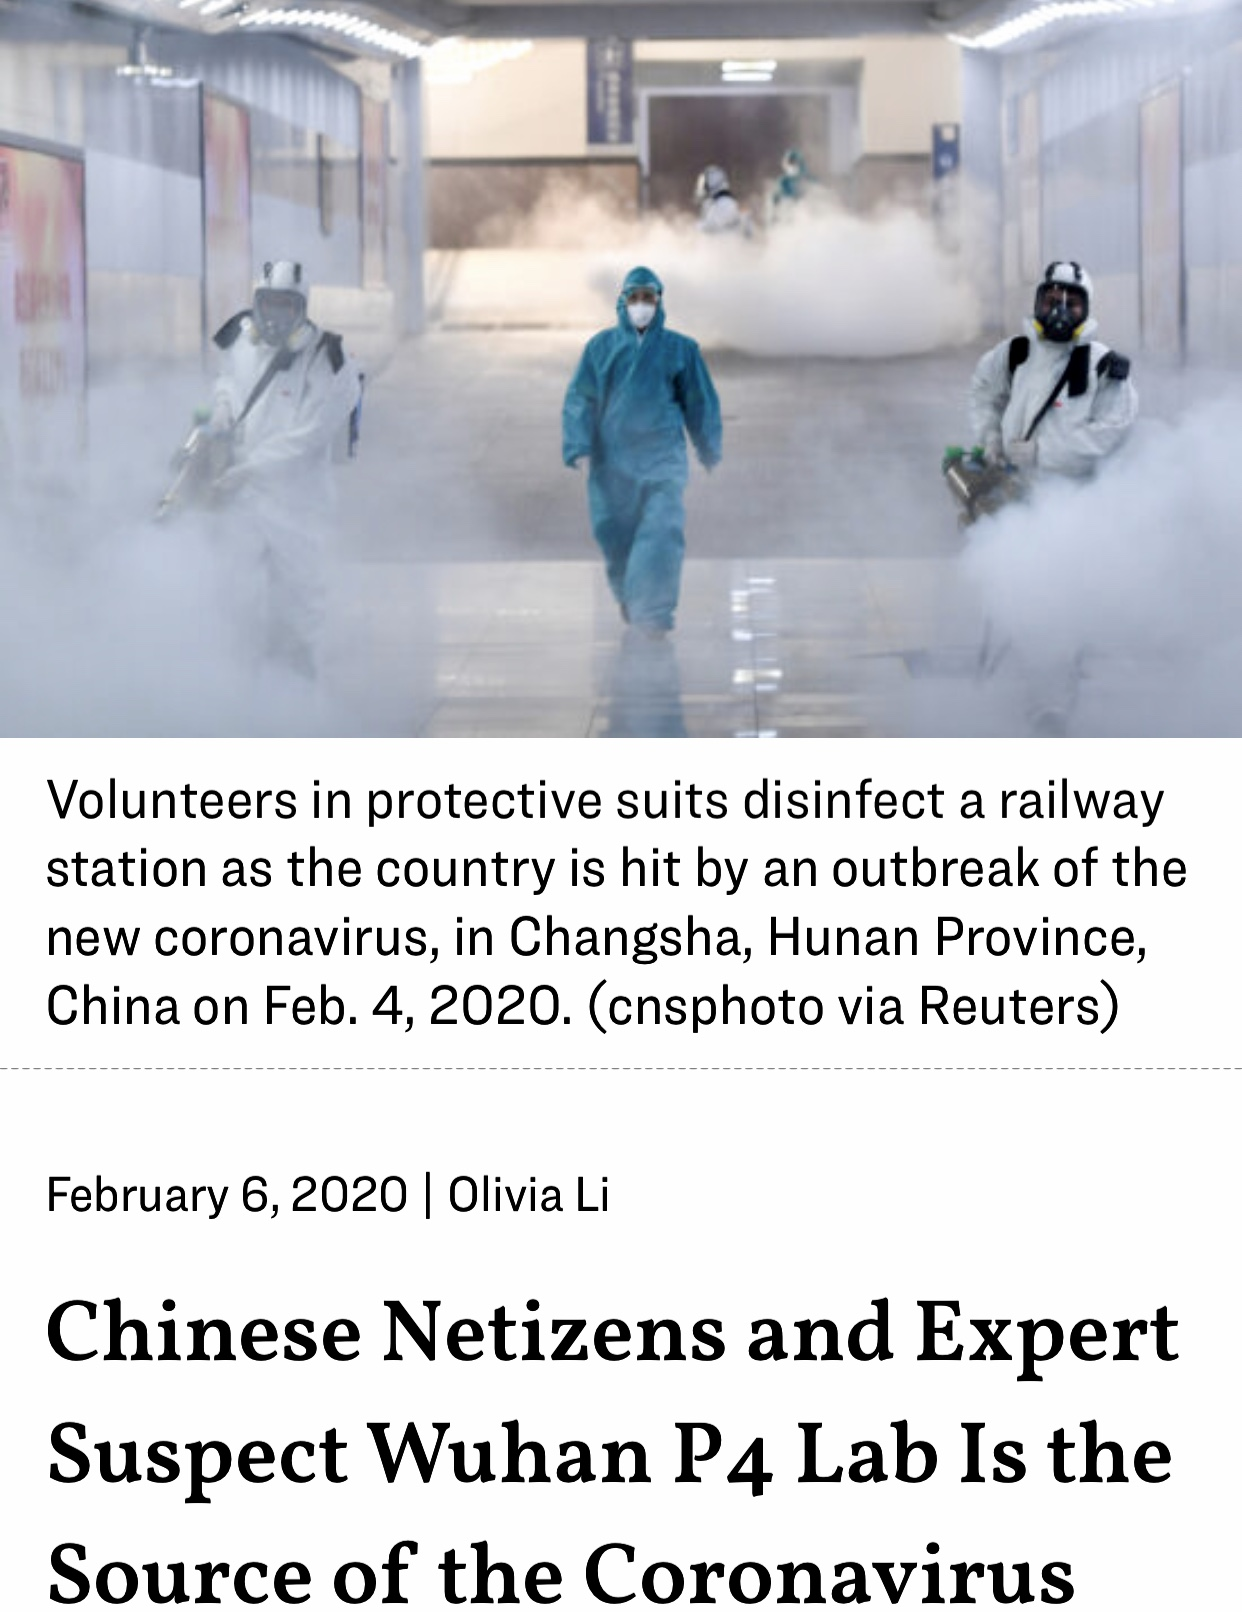 Chinese Netizens and Expert Suspect Wuhan P4 Lab Is the Source of the Coronavirus